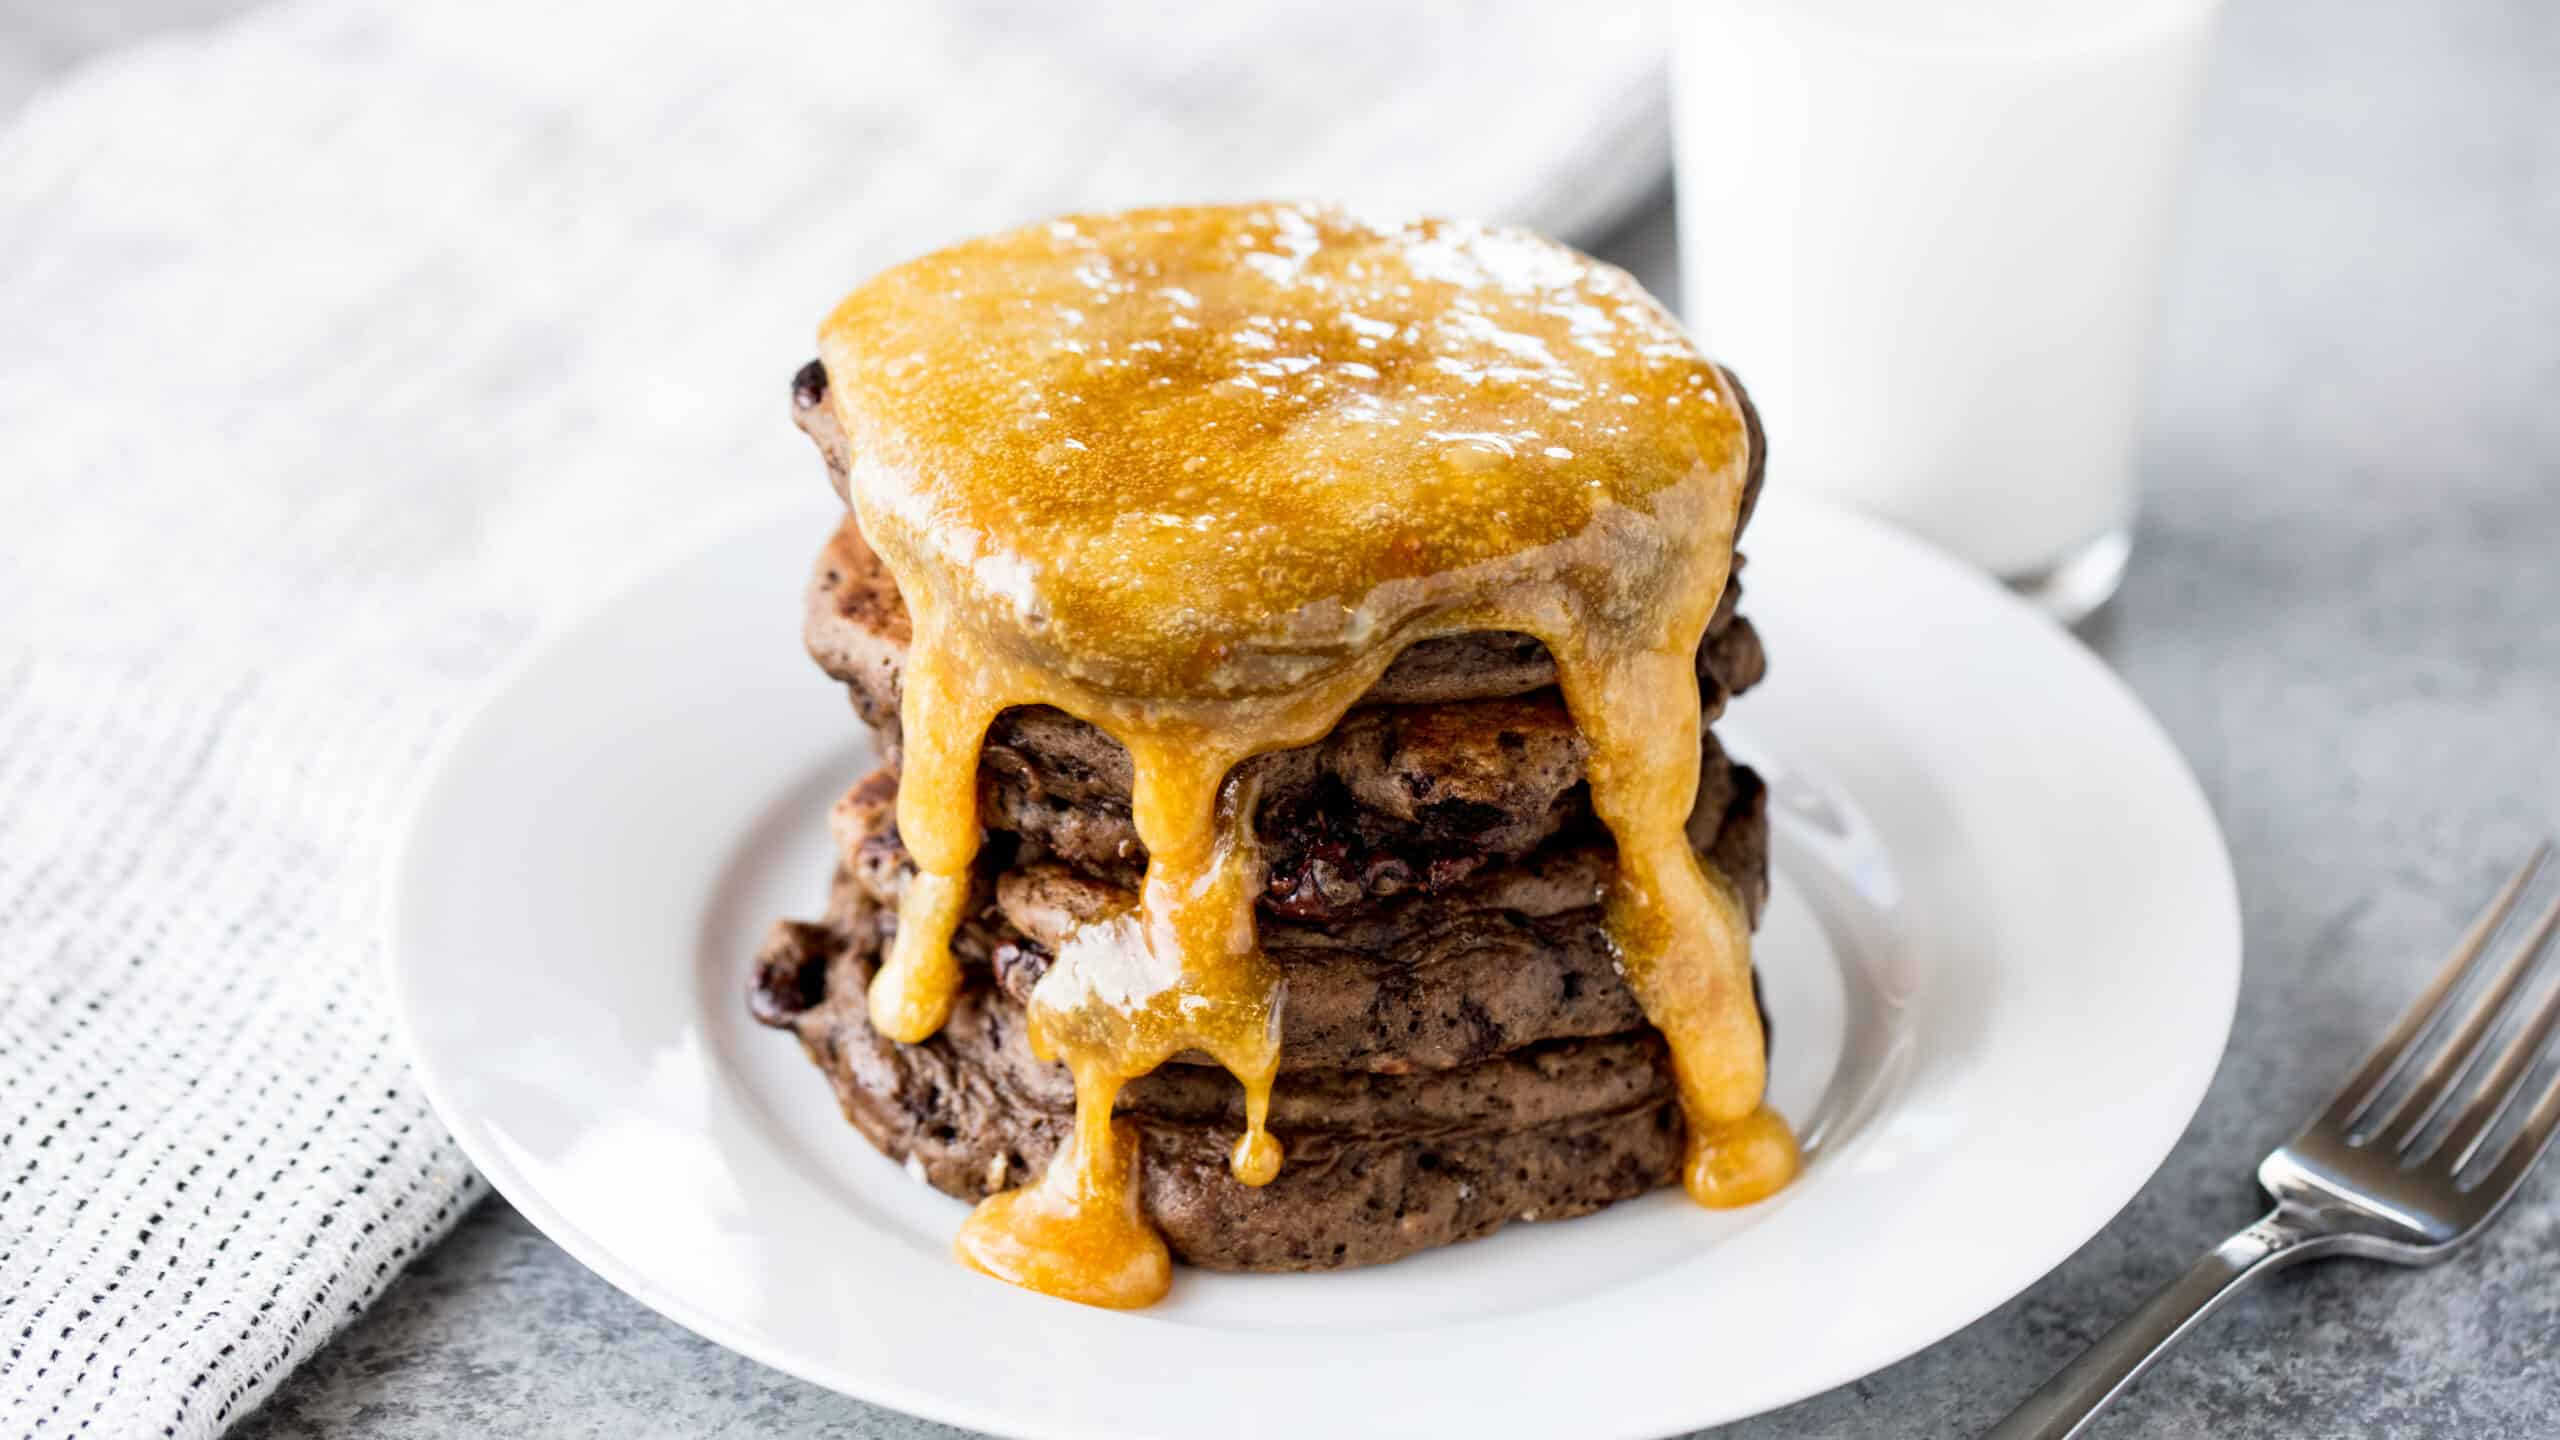 A stack of chocolate pancakes covered in a caramel syrup on a white plate.